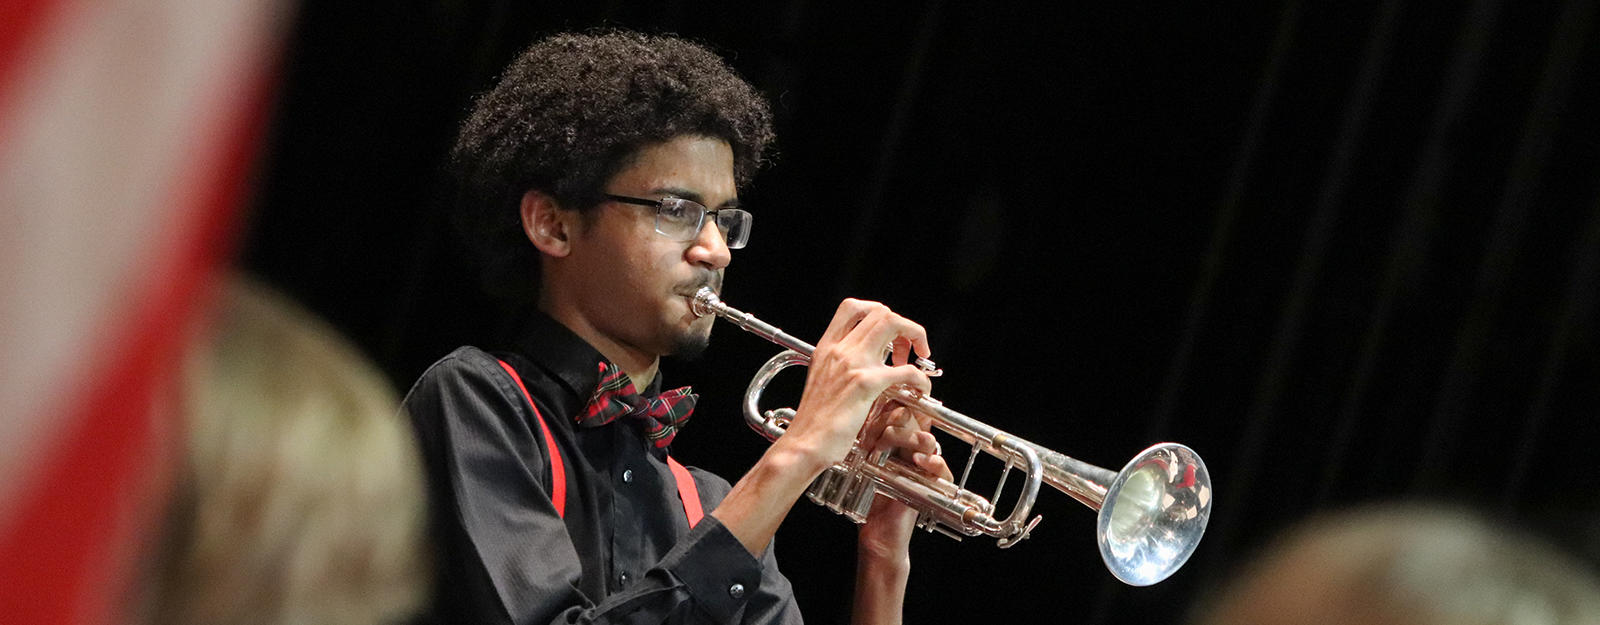 Student playing a trumpet during a concert.